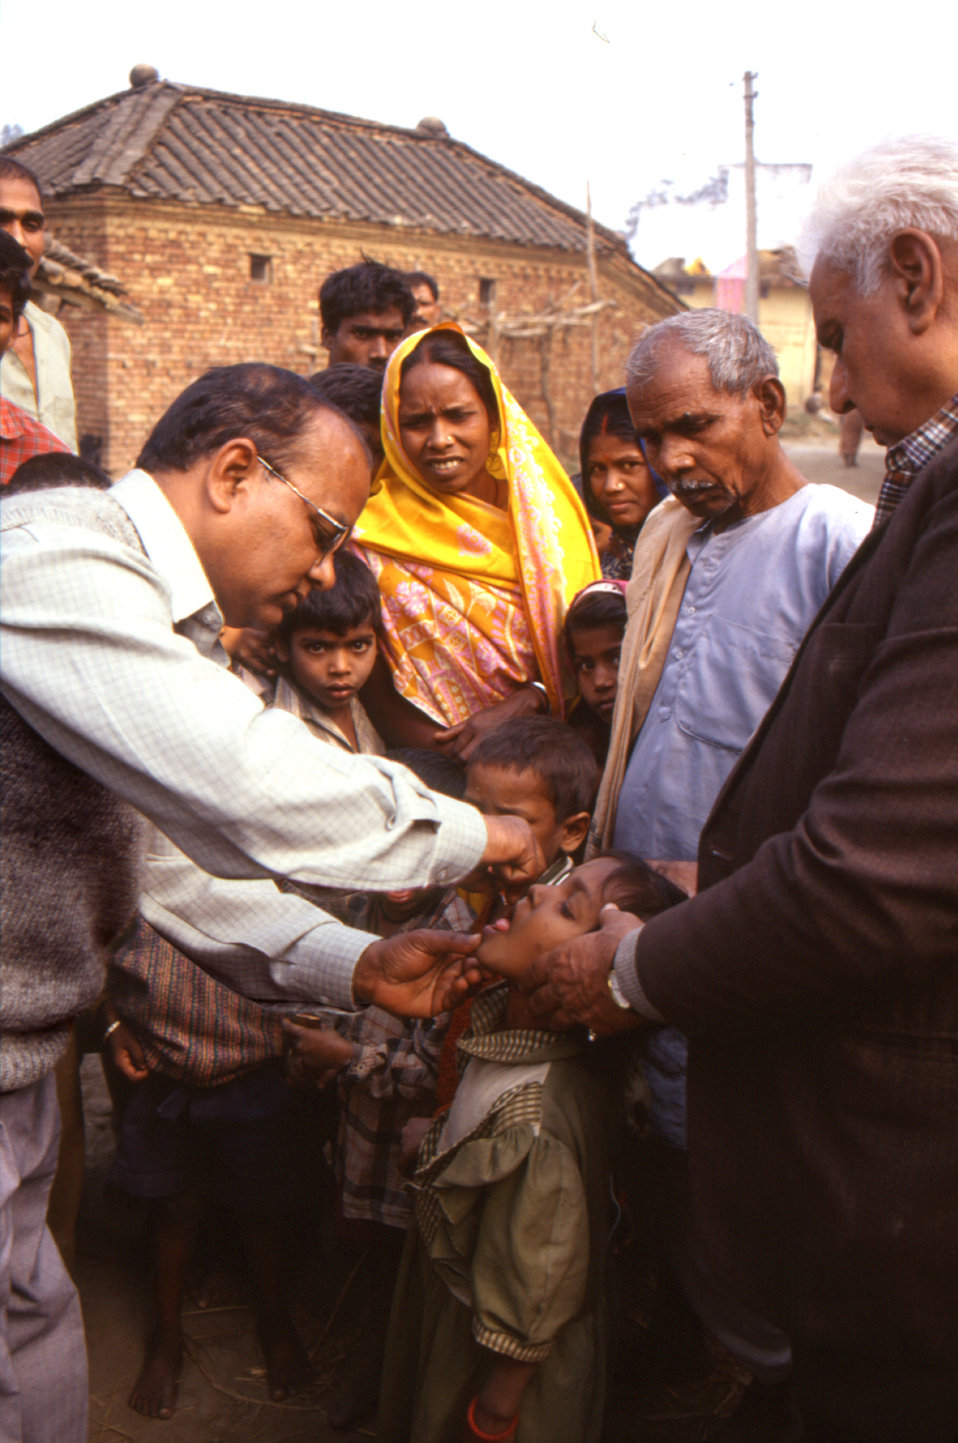 This 2000 photograph depicted a local Indian public health care practitioner administering an oral polio vaccine dosage to a child in an out